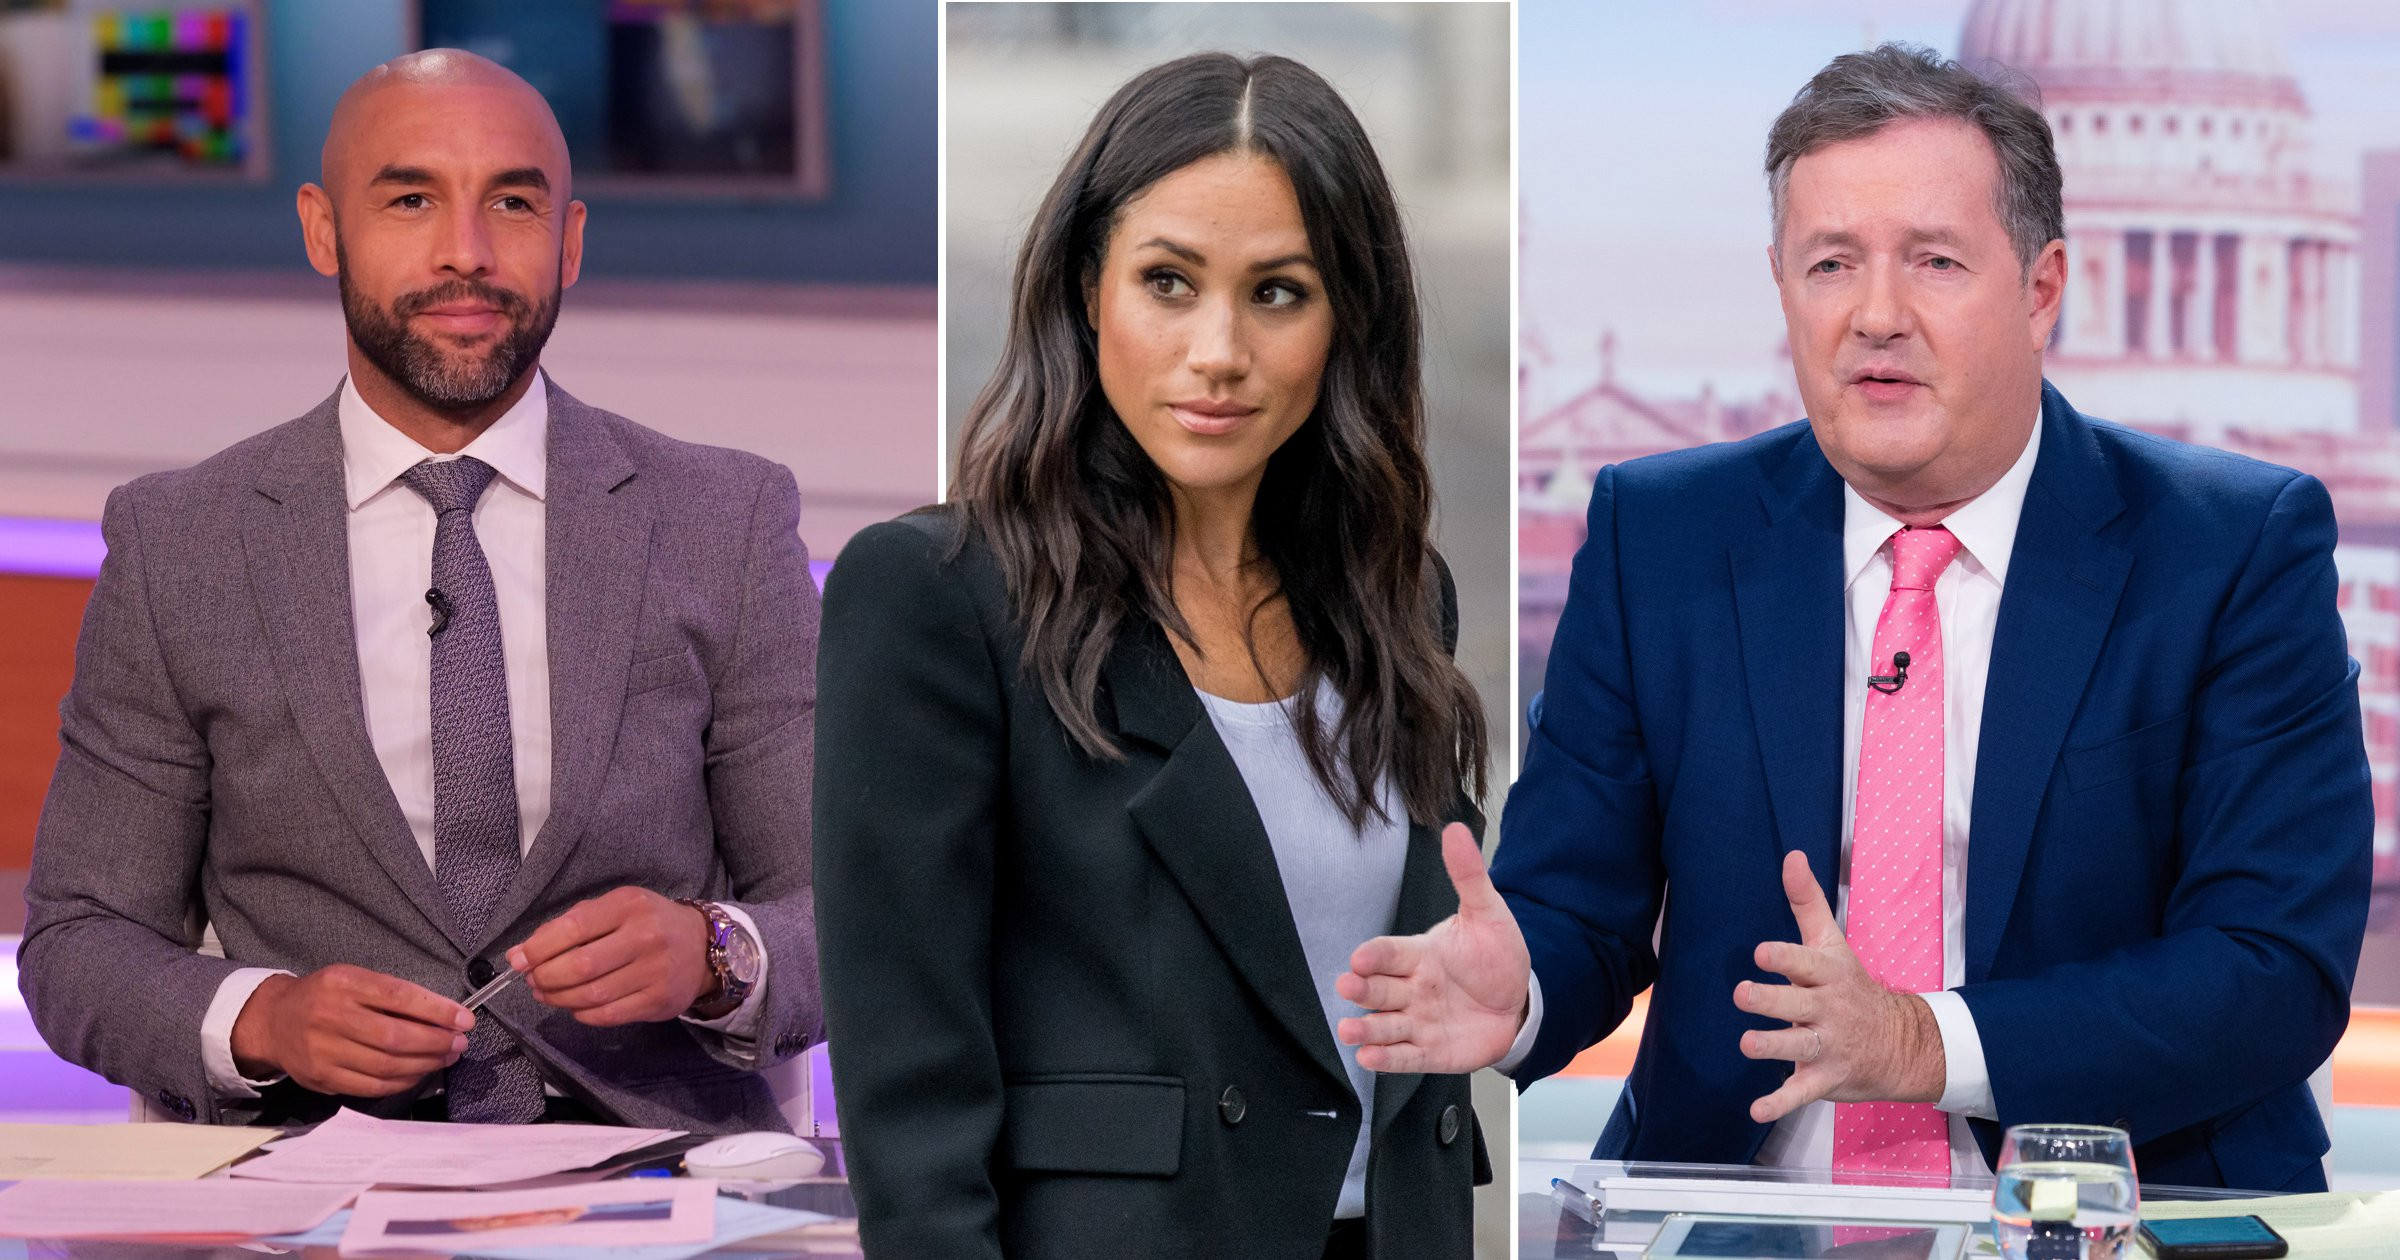 Piers Morgan clashed with GMB co-star Alex Beresford on the show on Tuesday, after his response to Meghan and husband Prince Harry's interview with Oprah Winfrey which aired on Monday night.